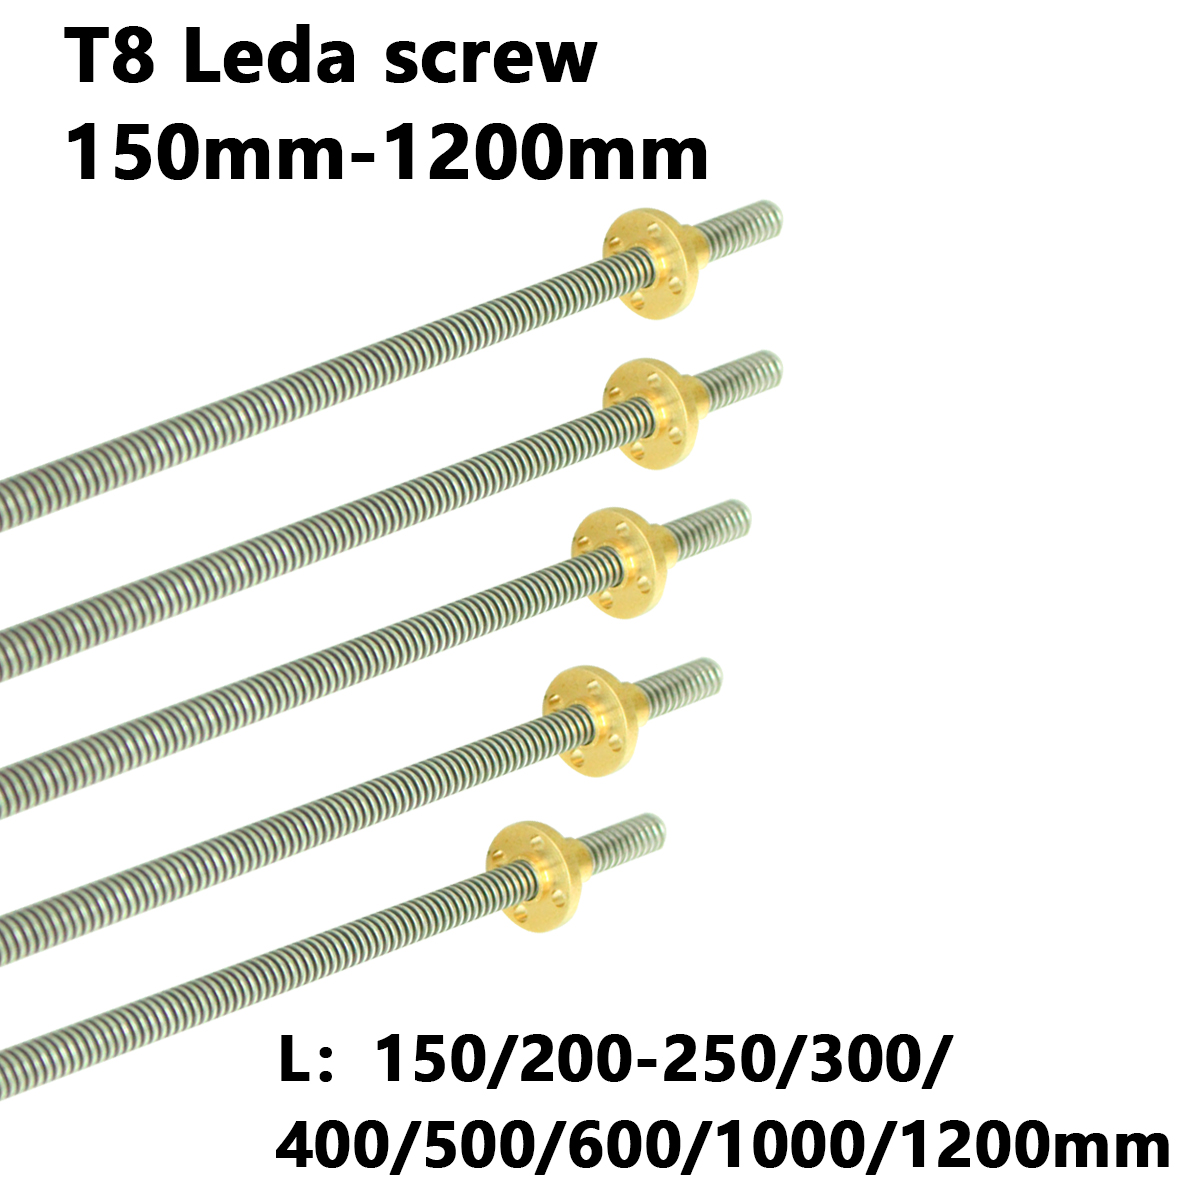 T8 Lead Screw Rod OD 8mm Pitch 2mm Lead 2mm 150 200 300 350 400 500 600 1000 1200 Mm With Brass Nut For CNC 3D Printer